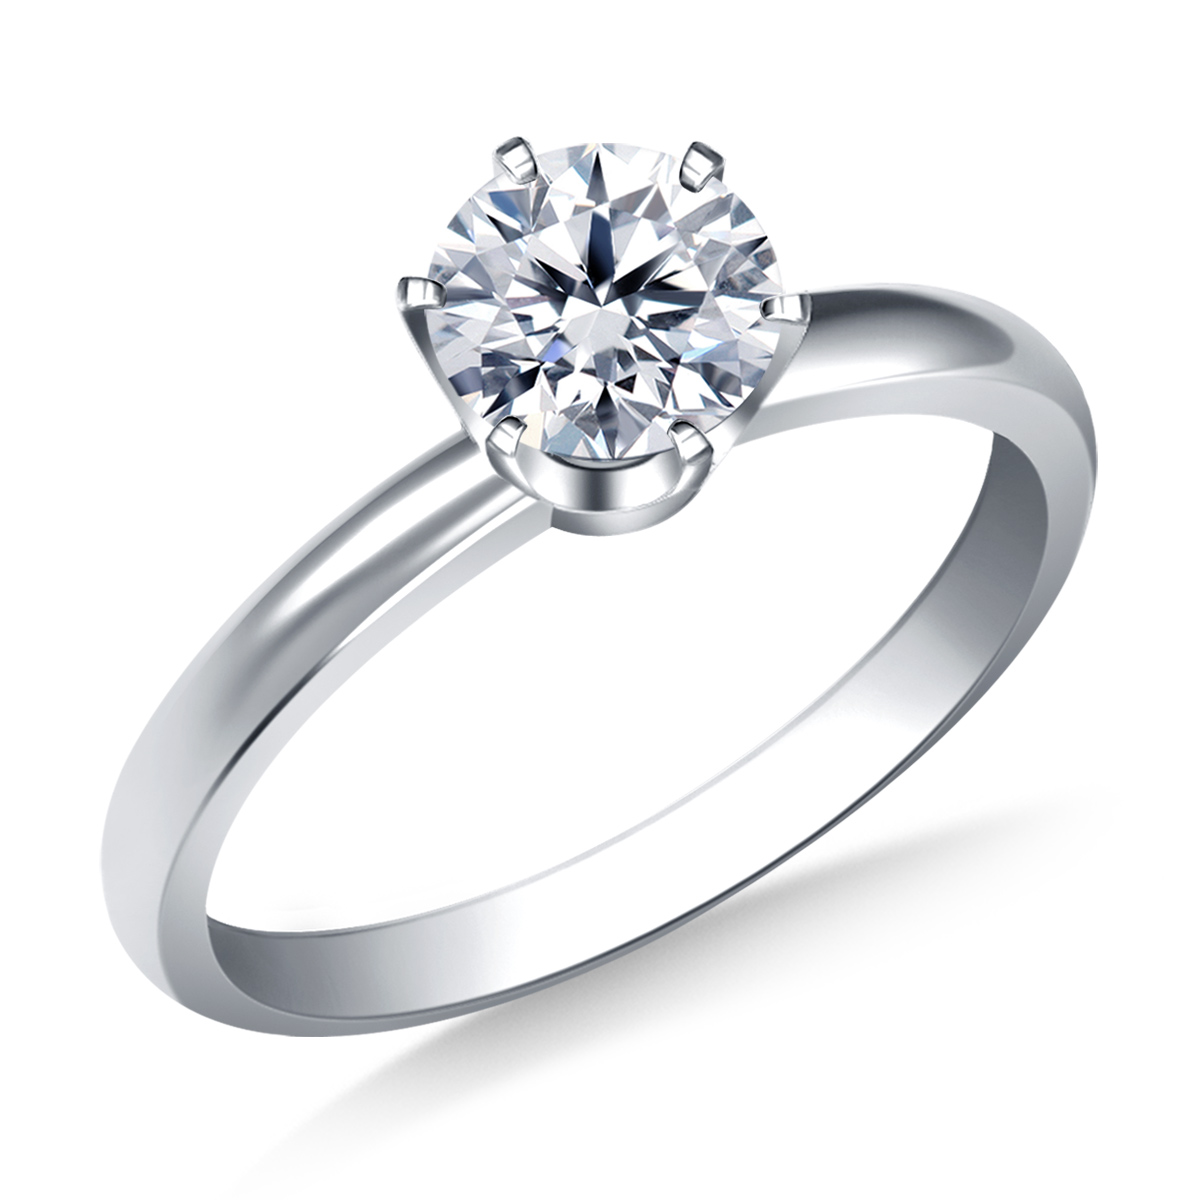 This Gorgeous Solitaire Ring Is A Wonderful Choice For A Classic Engagement  Ring. A Solitaire Ring With A Round Brilliant Diamond Has Remained The  Preferred ...